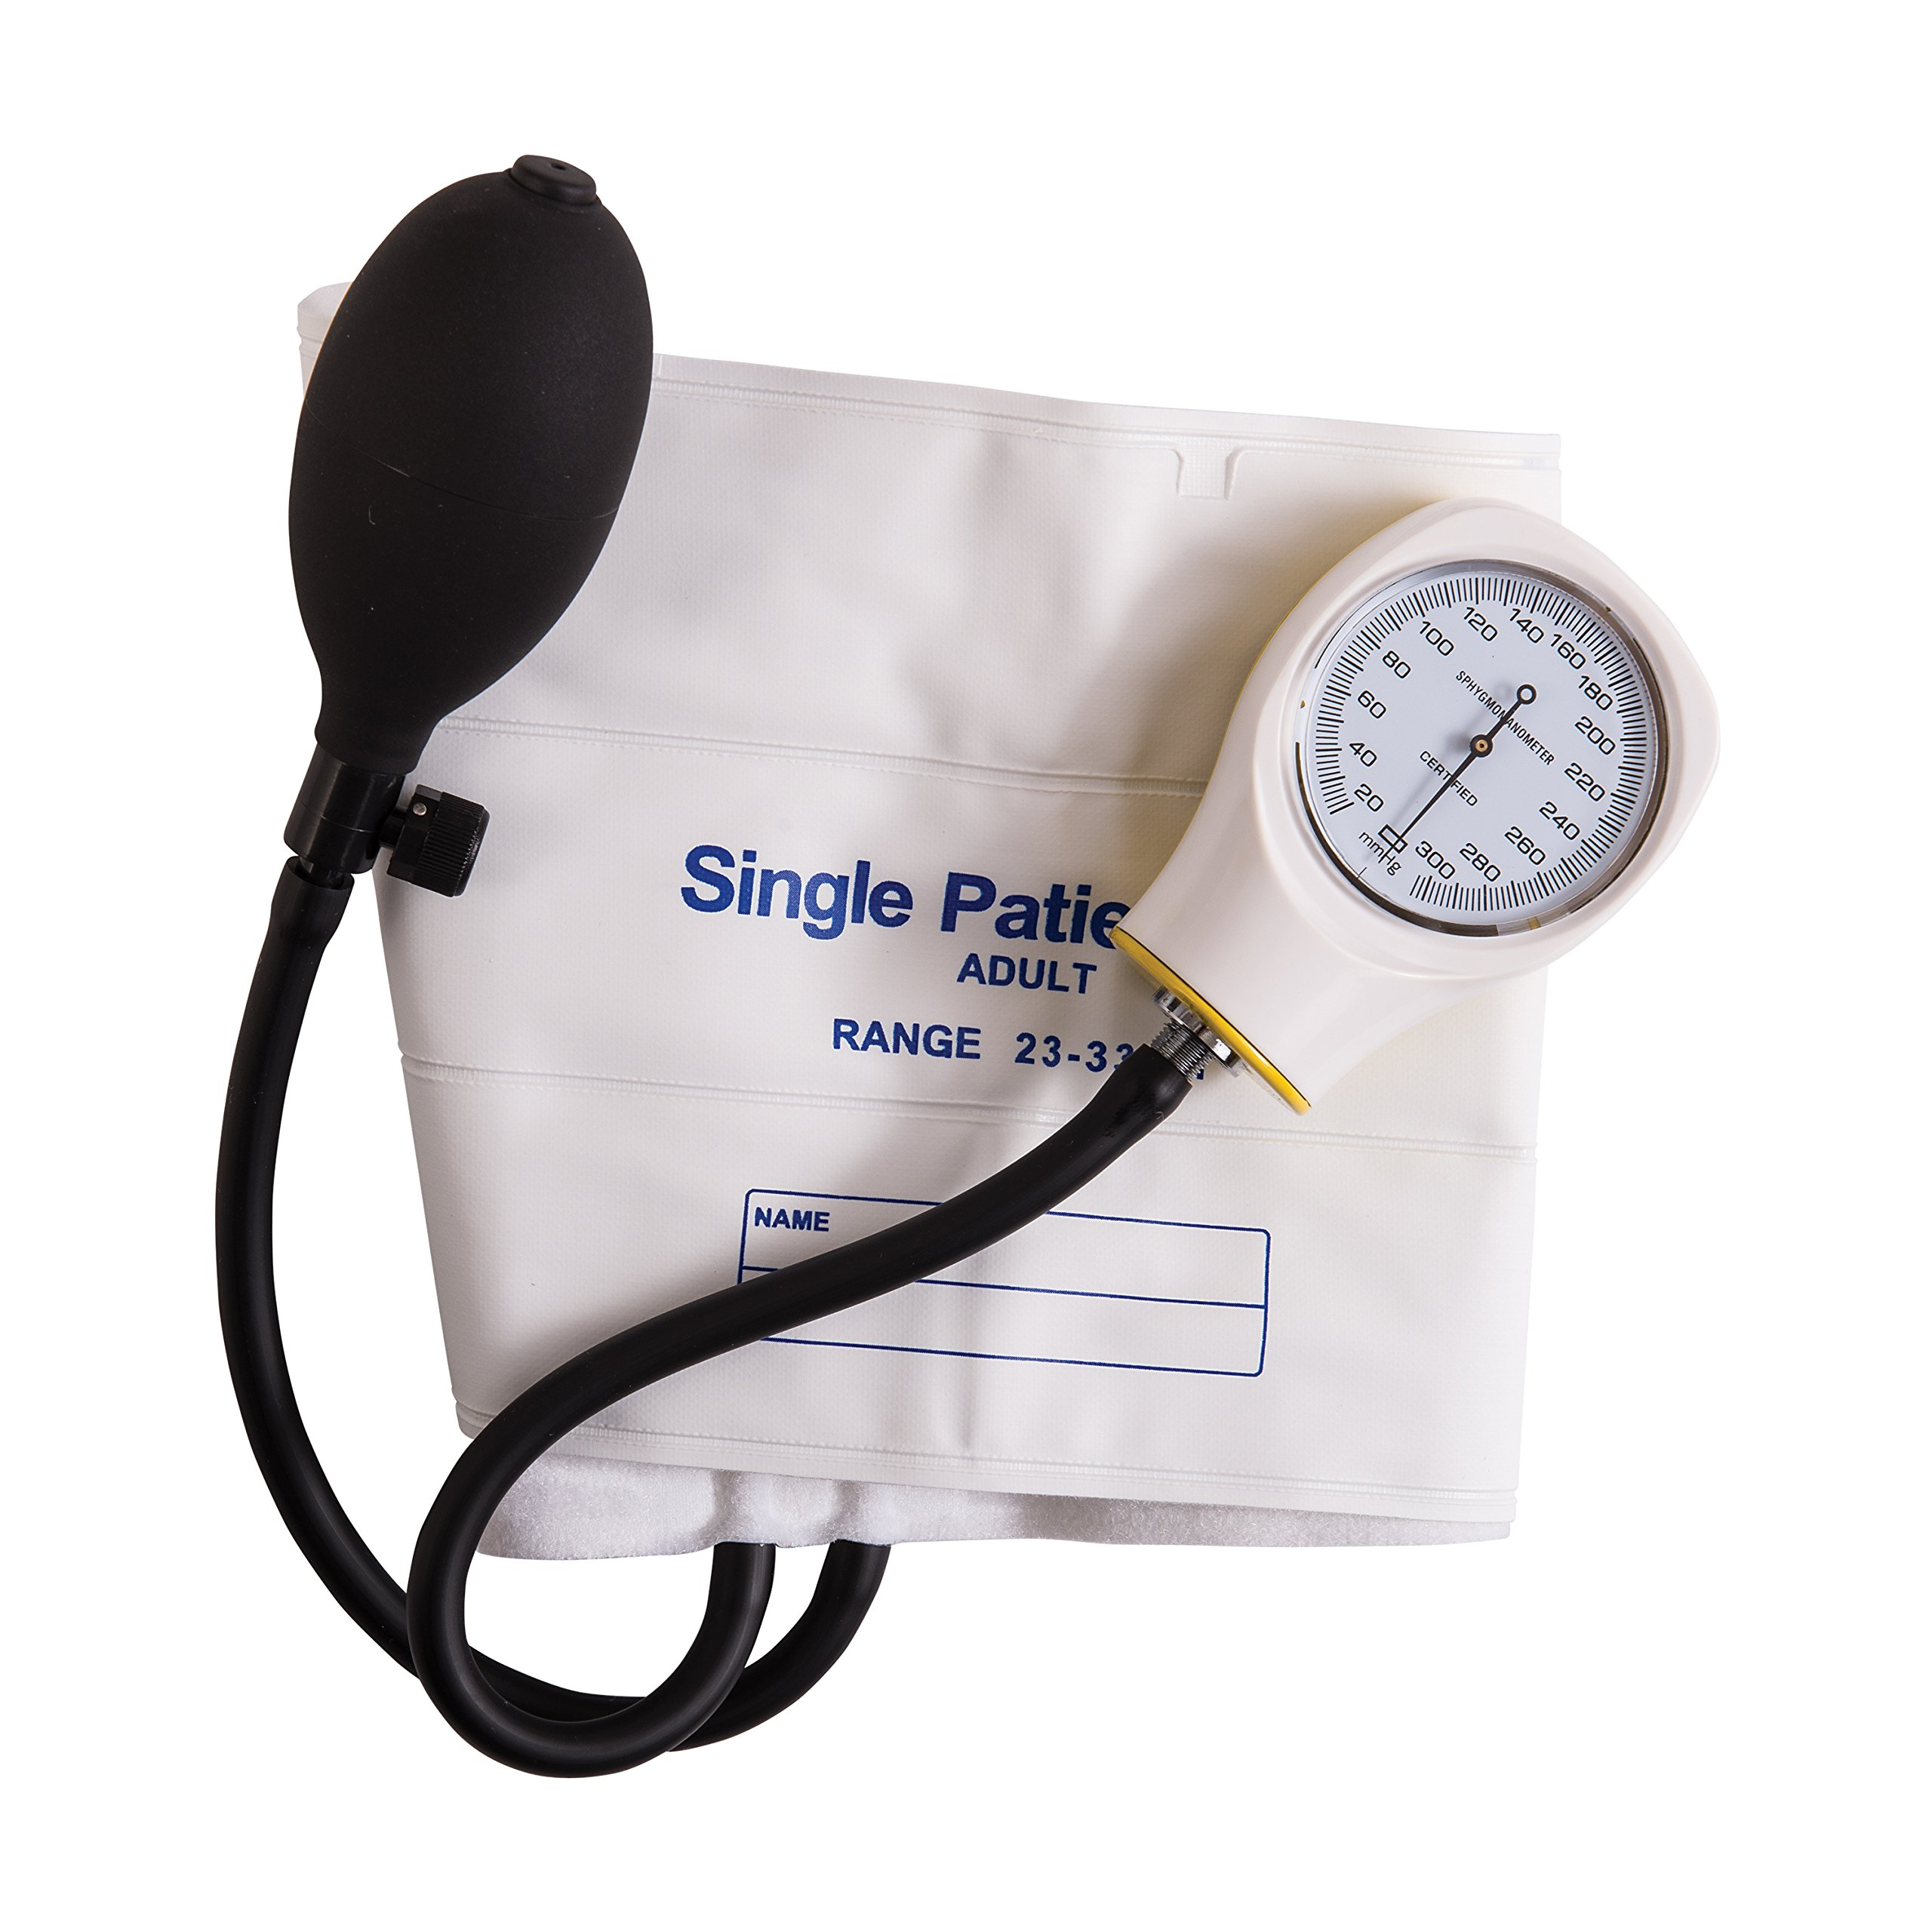 MABIS Disposable Sphygmomanometer Manual Arm Blood Pressure Cuffs, Single Use, Adult, Box of 5, White by Mabis (Image #2)